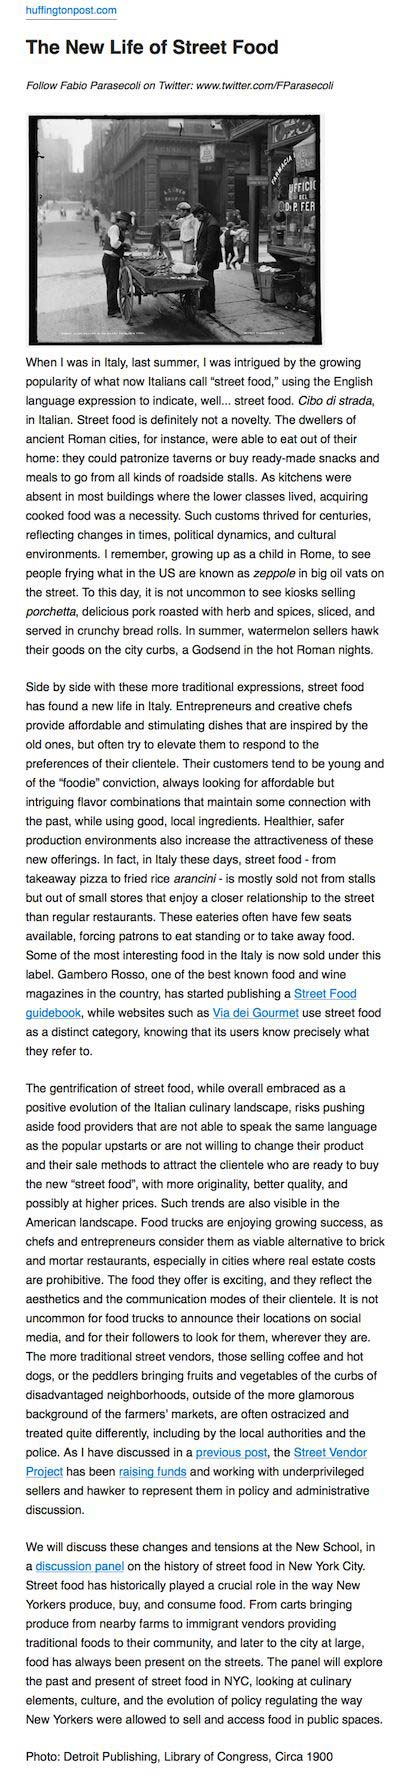 via dei gourmet huffington post